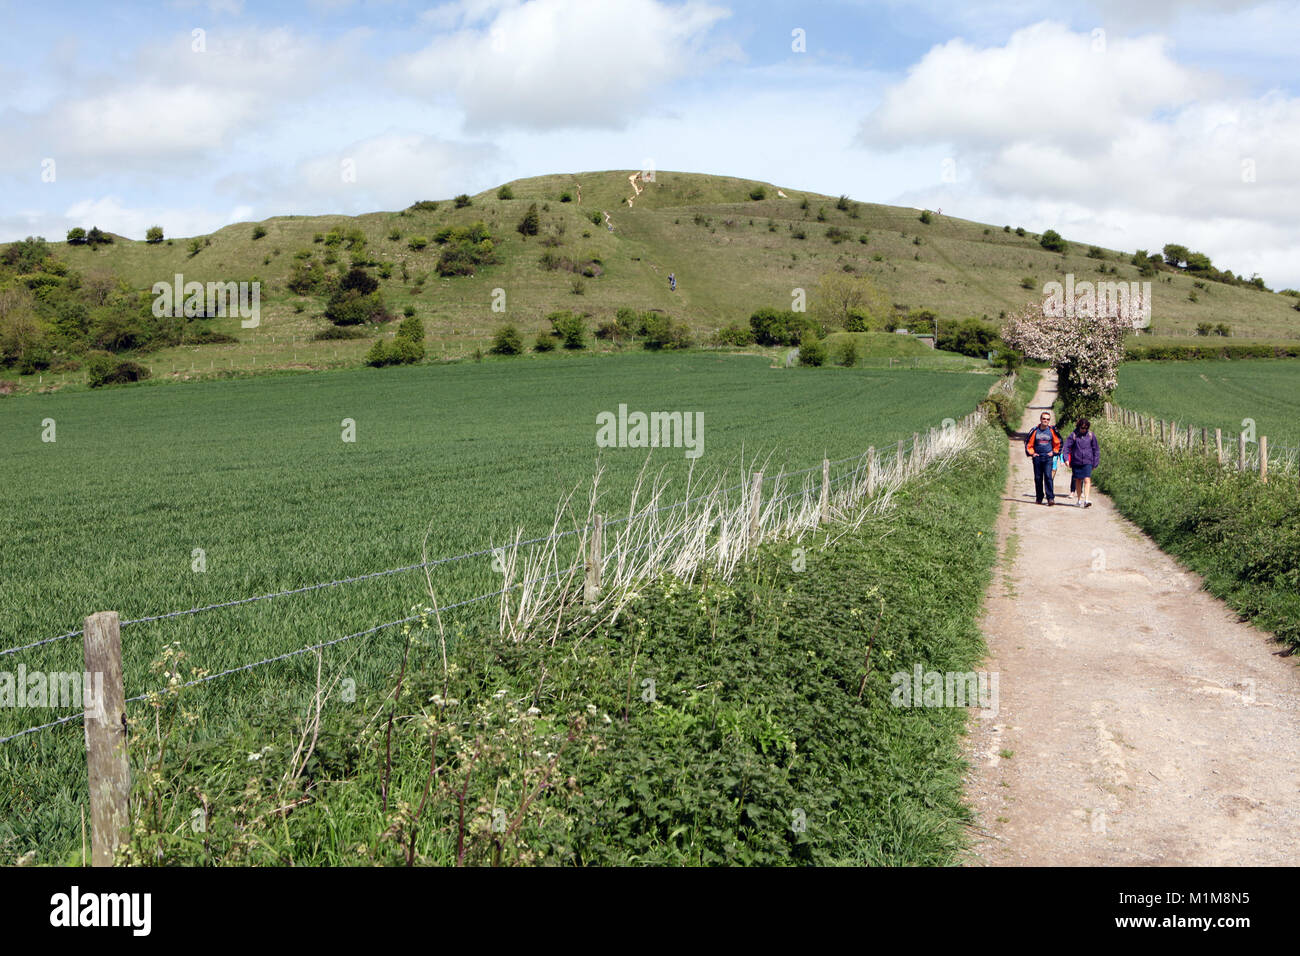 Cley Hill near Longleat in Wiltshire. A popular West Country walk for families in the UK. - Stock Image